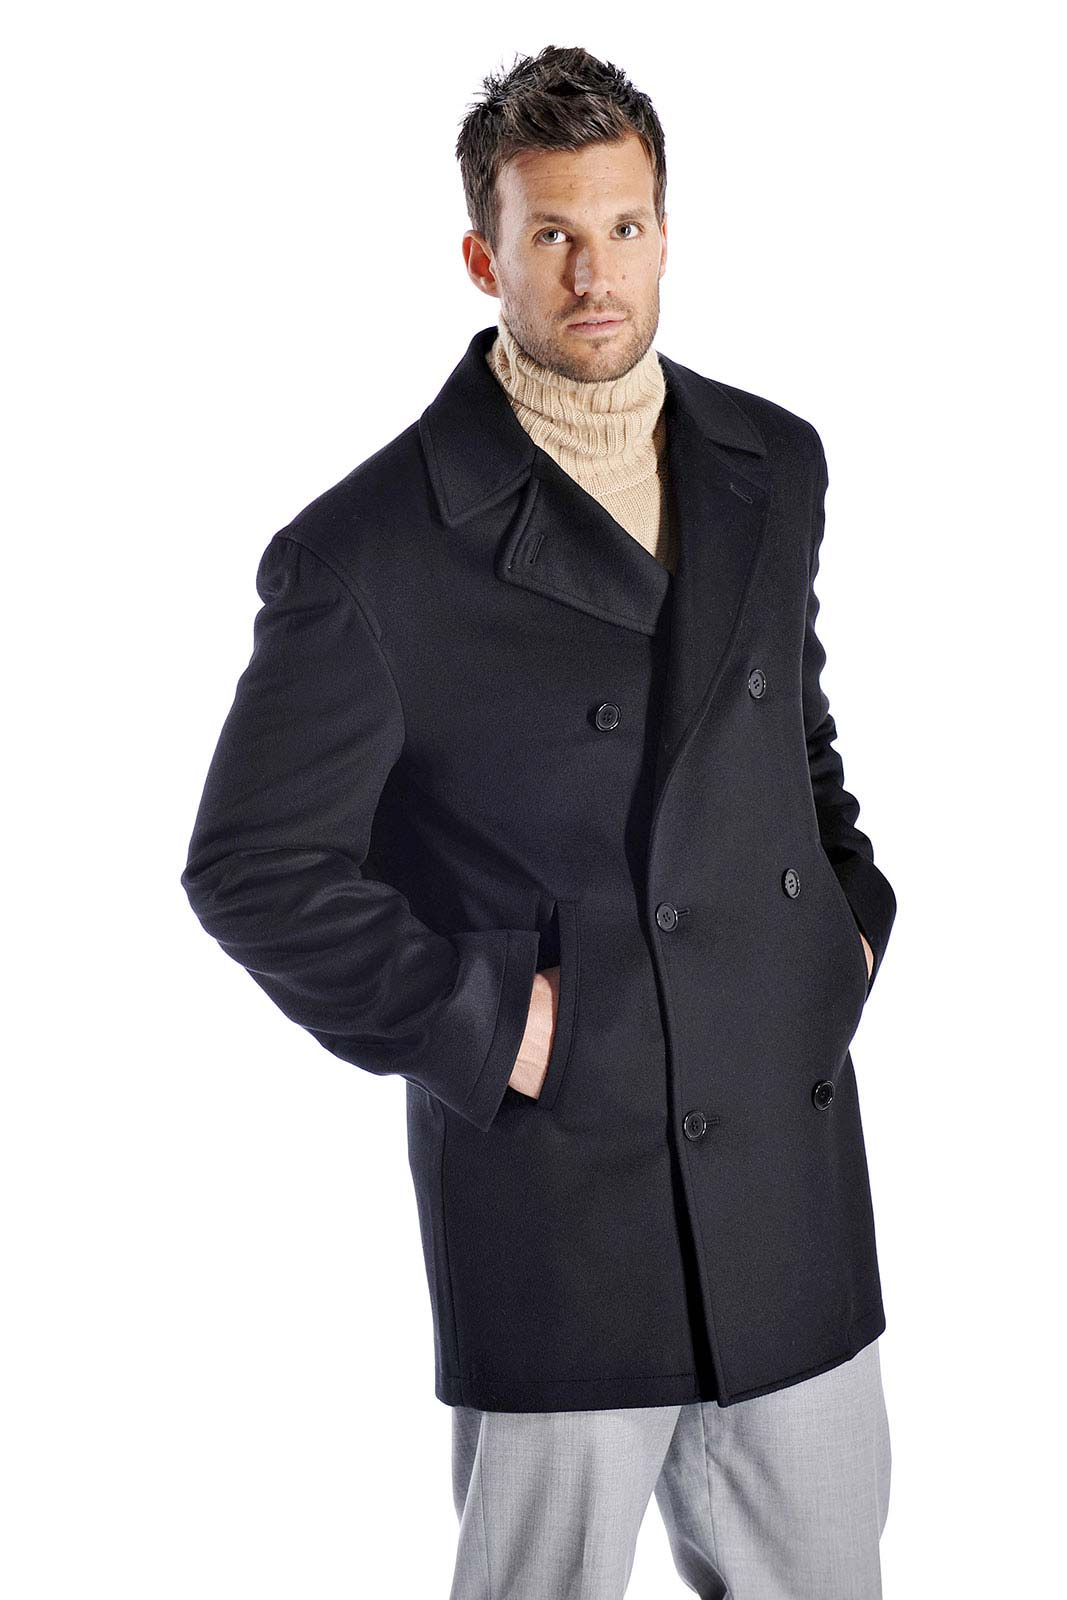 Luxurious soft and really warm this pea coat is made from the finest grades of cashmere and fine wool and offers unsurpassed warmth and softness. This is a hip length coat and has the following features-Made from 30 Cashmere and 70 Fine WoolHip Length with Side PocketsDouble Breasted 100 Polyester Satin Lining Available in Black & Charcoal ColorsAvailable in standard US sizes 40 to 50Measurements of this Coat Size404244464850Length3434.53535.53636.5Shoulder20.52121.52222.523Sleeve26.52727.52828.829Corresponding Suit Size404244464850